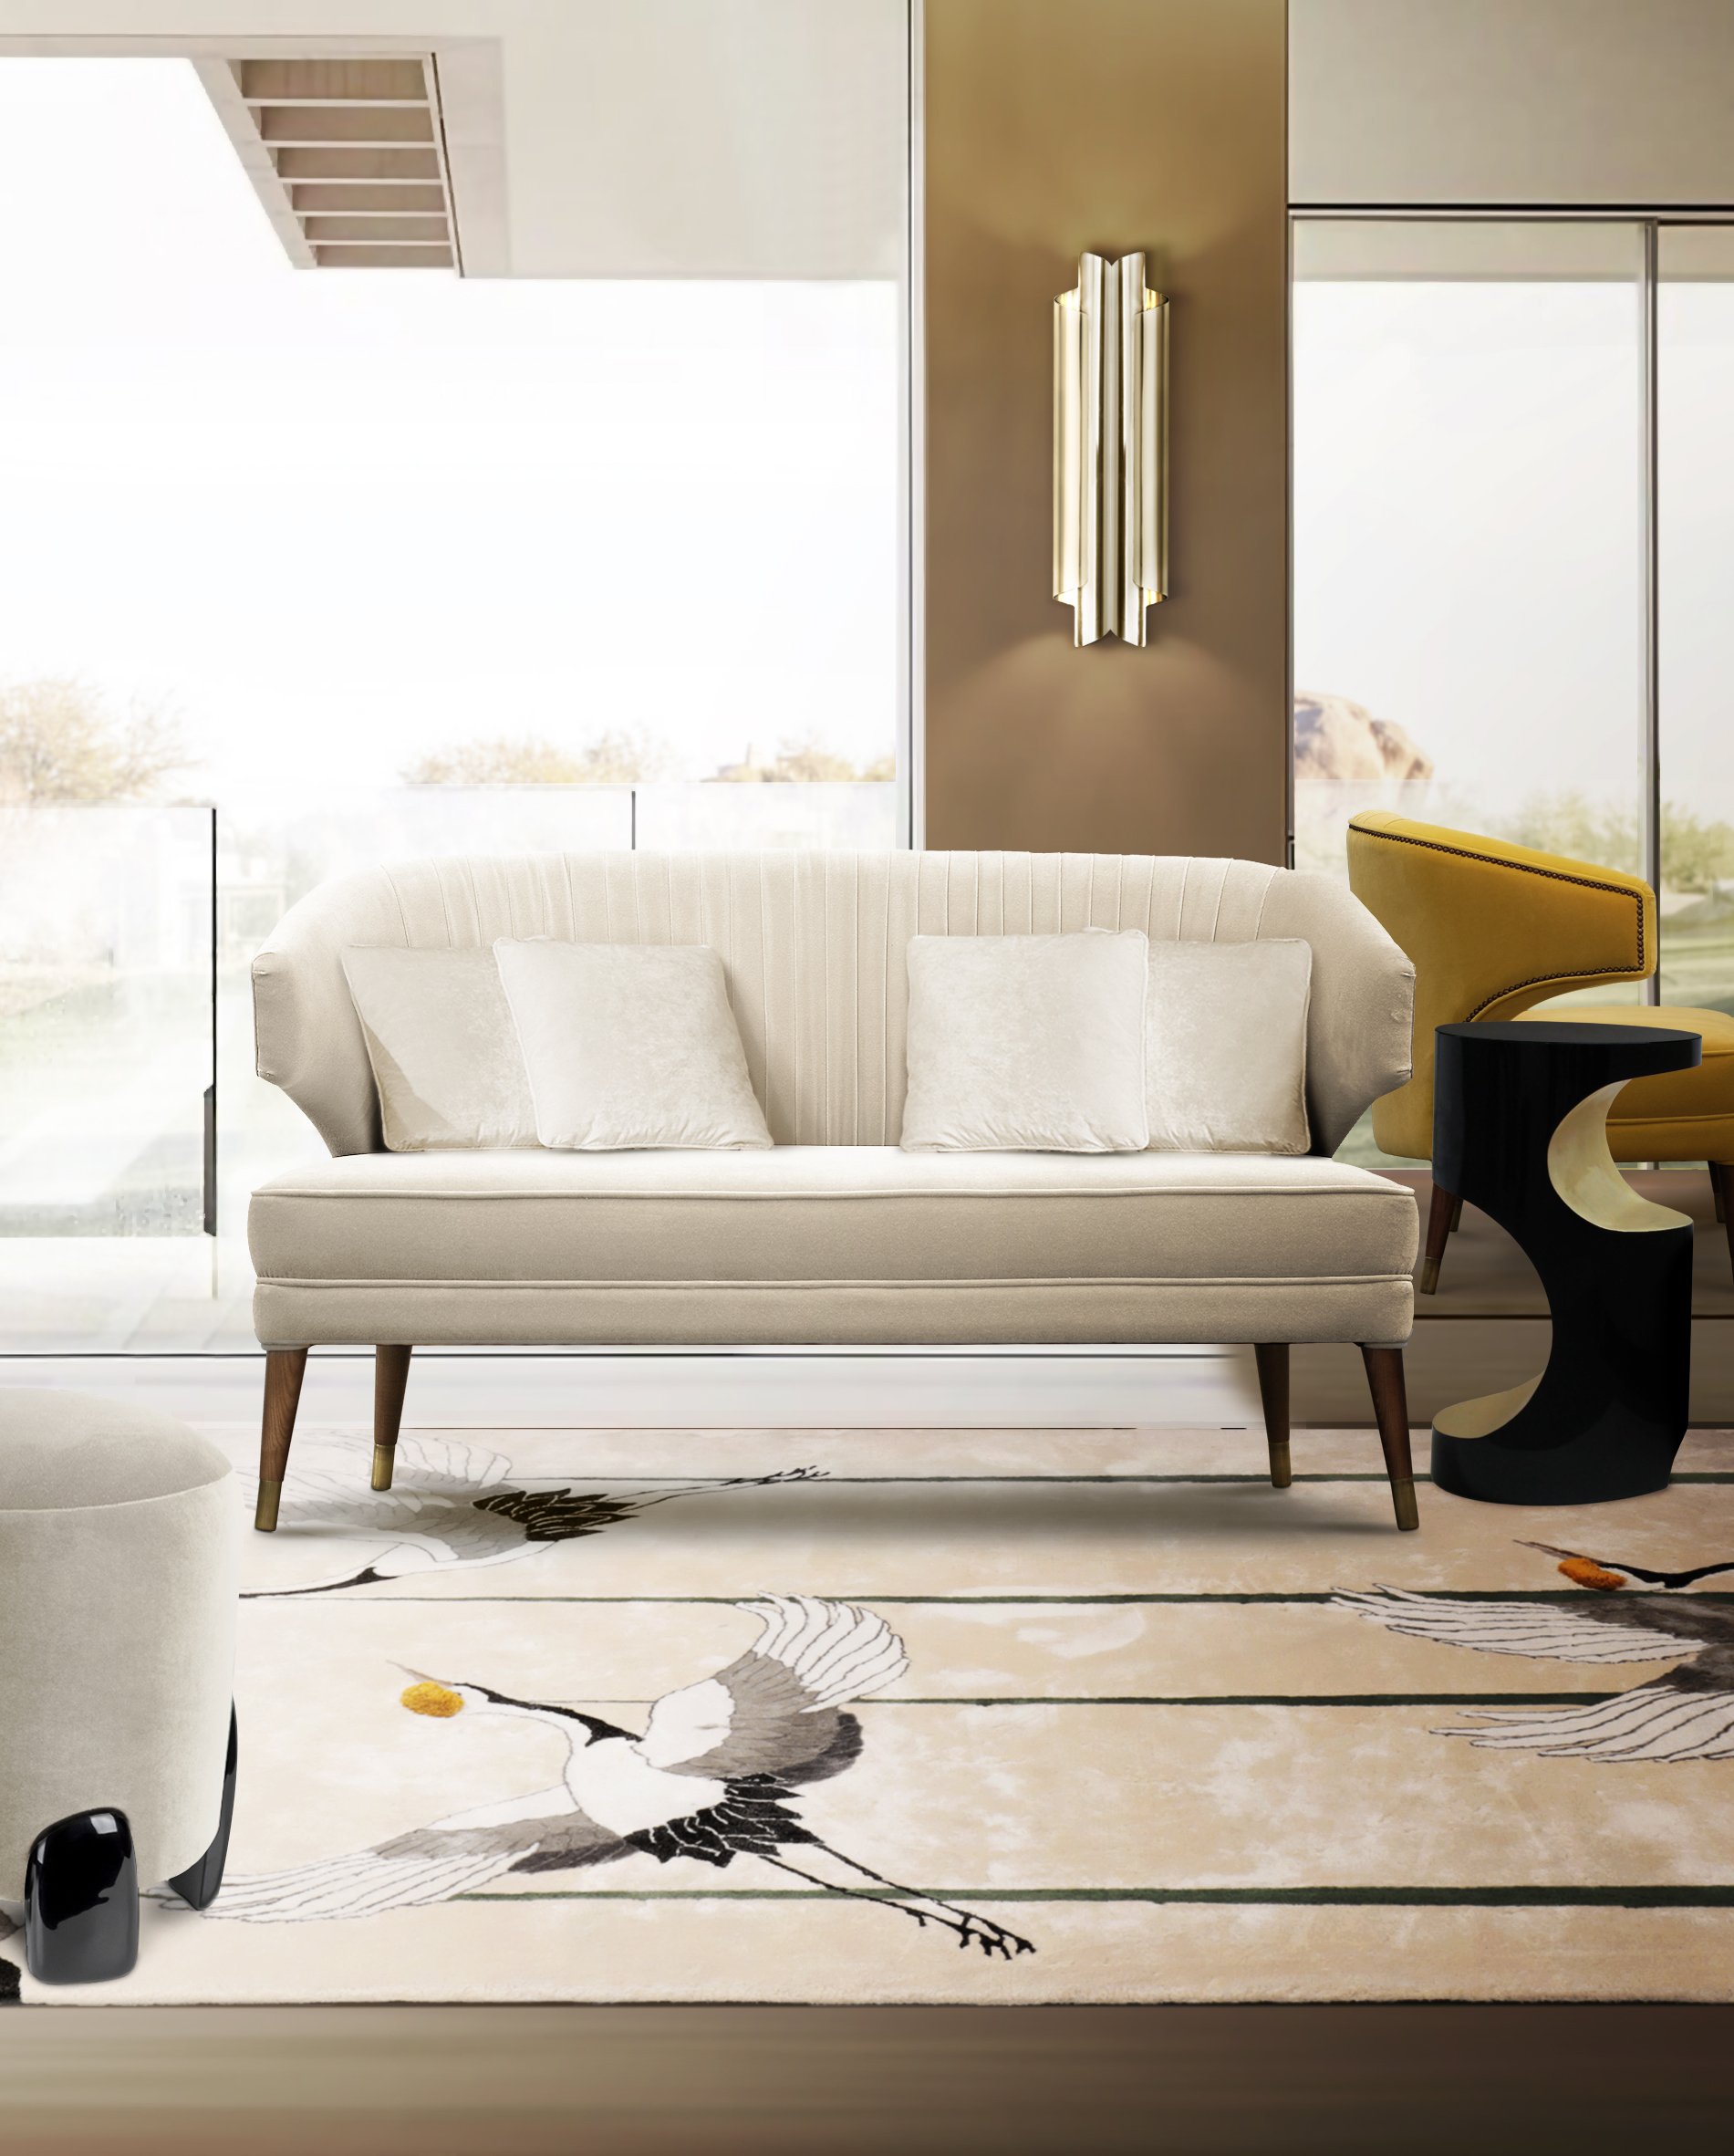 The Best Sofa Inspirations For Small Places sofa inspirations The Best Sofa Inspirations For Small Spaces BB ibis 2 seat 1